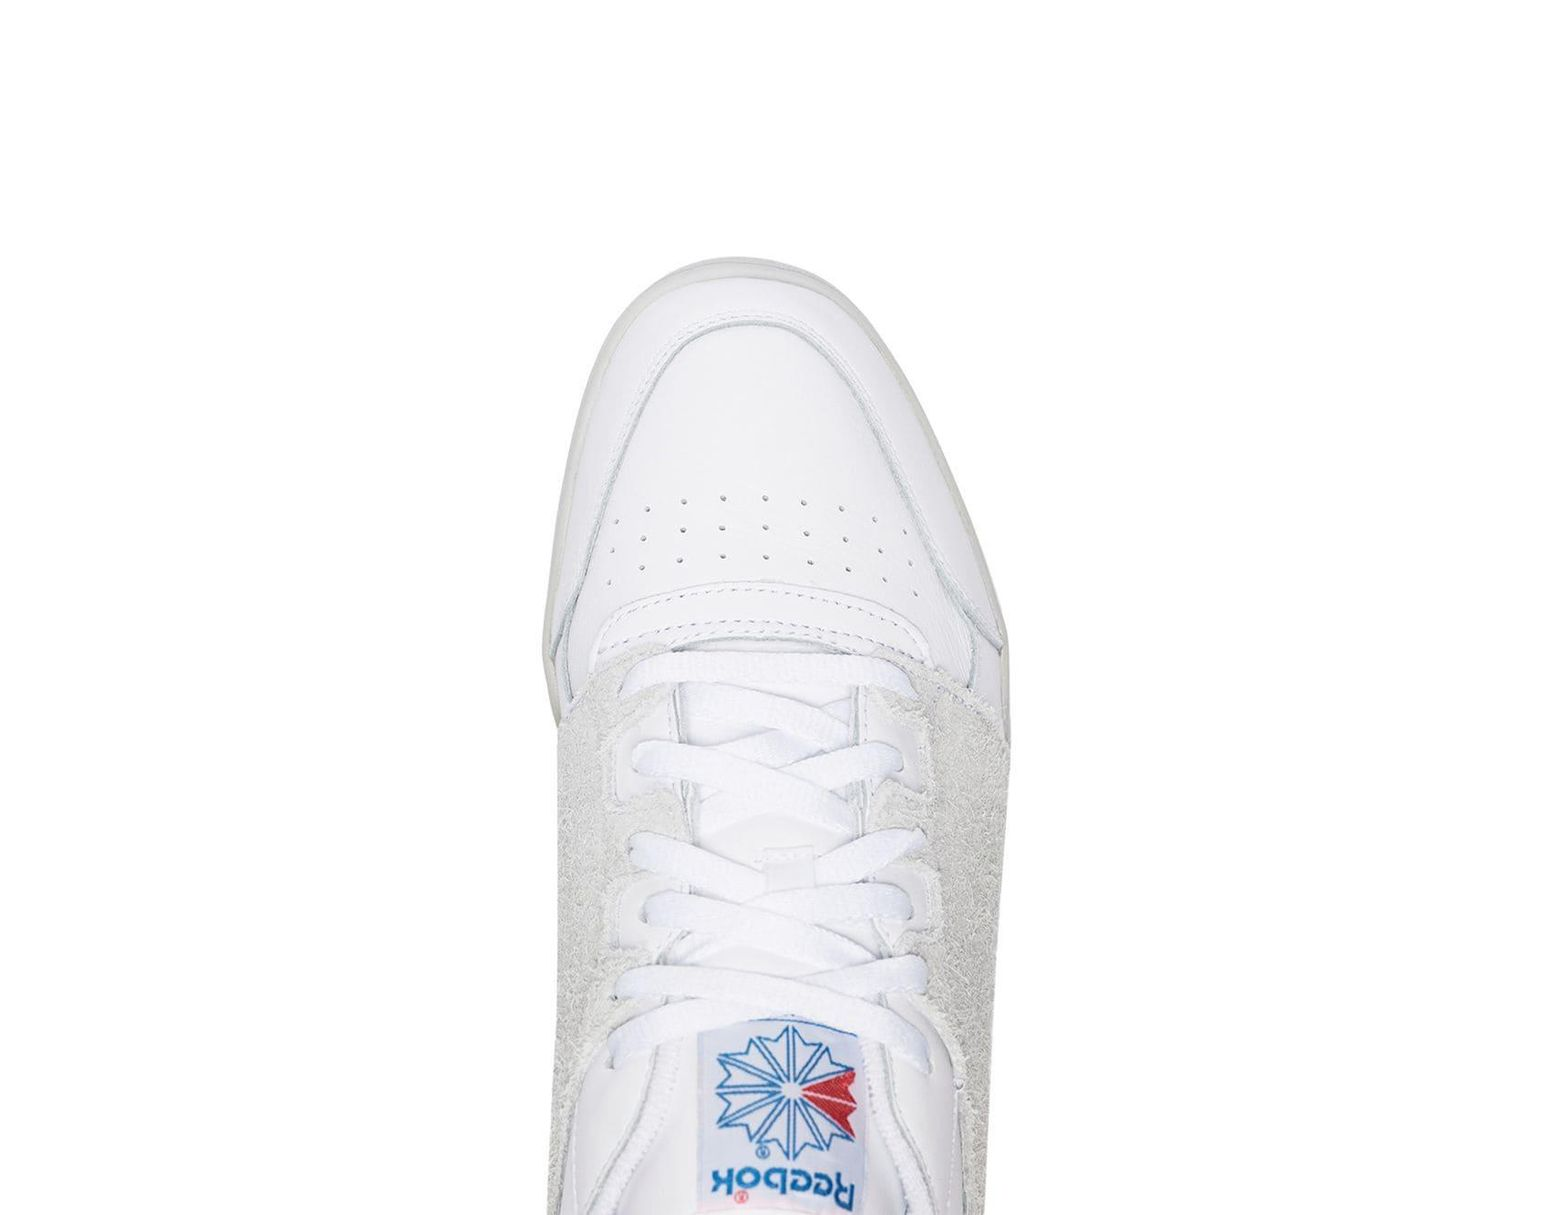 7a4d2ce1c Reebok White X Nepenthes Workout Plus Suede Panel Leather Low-top Sneakers  in White for Men - Save 43% - Lyst